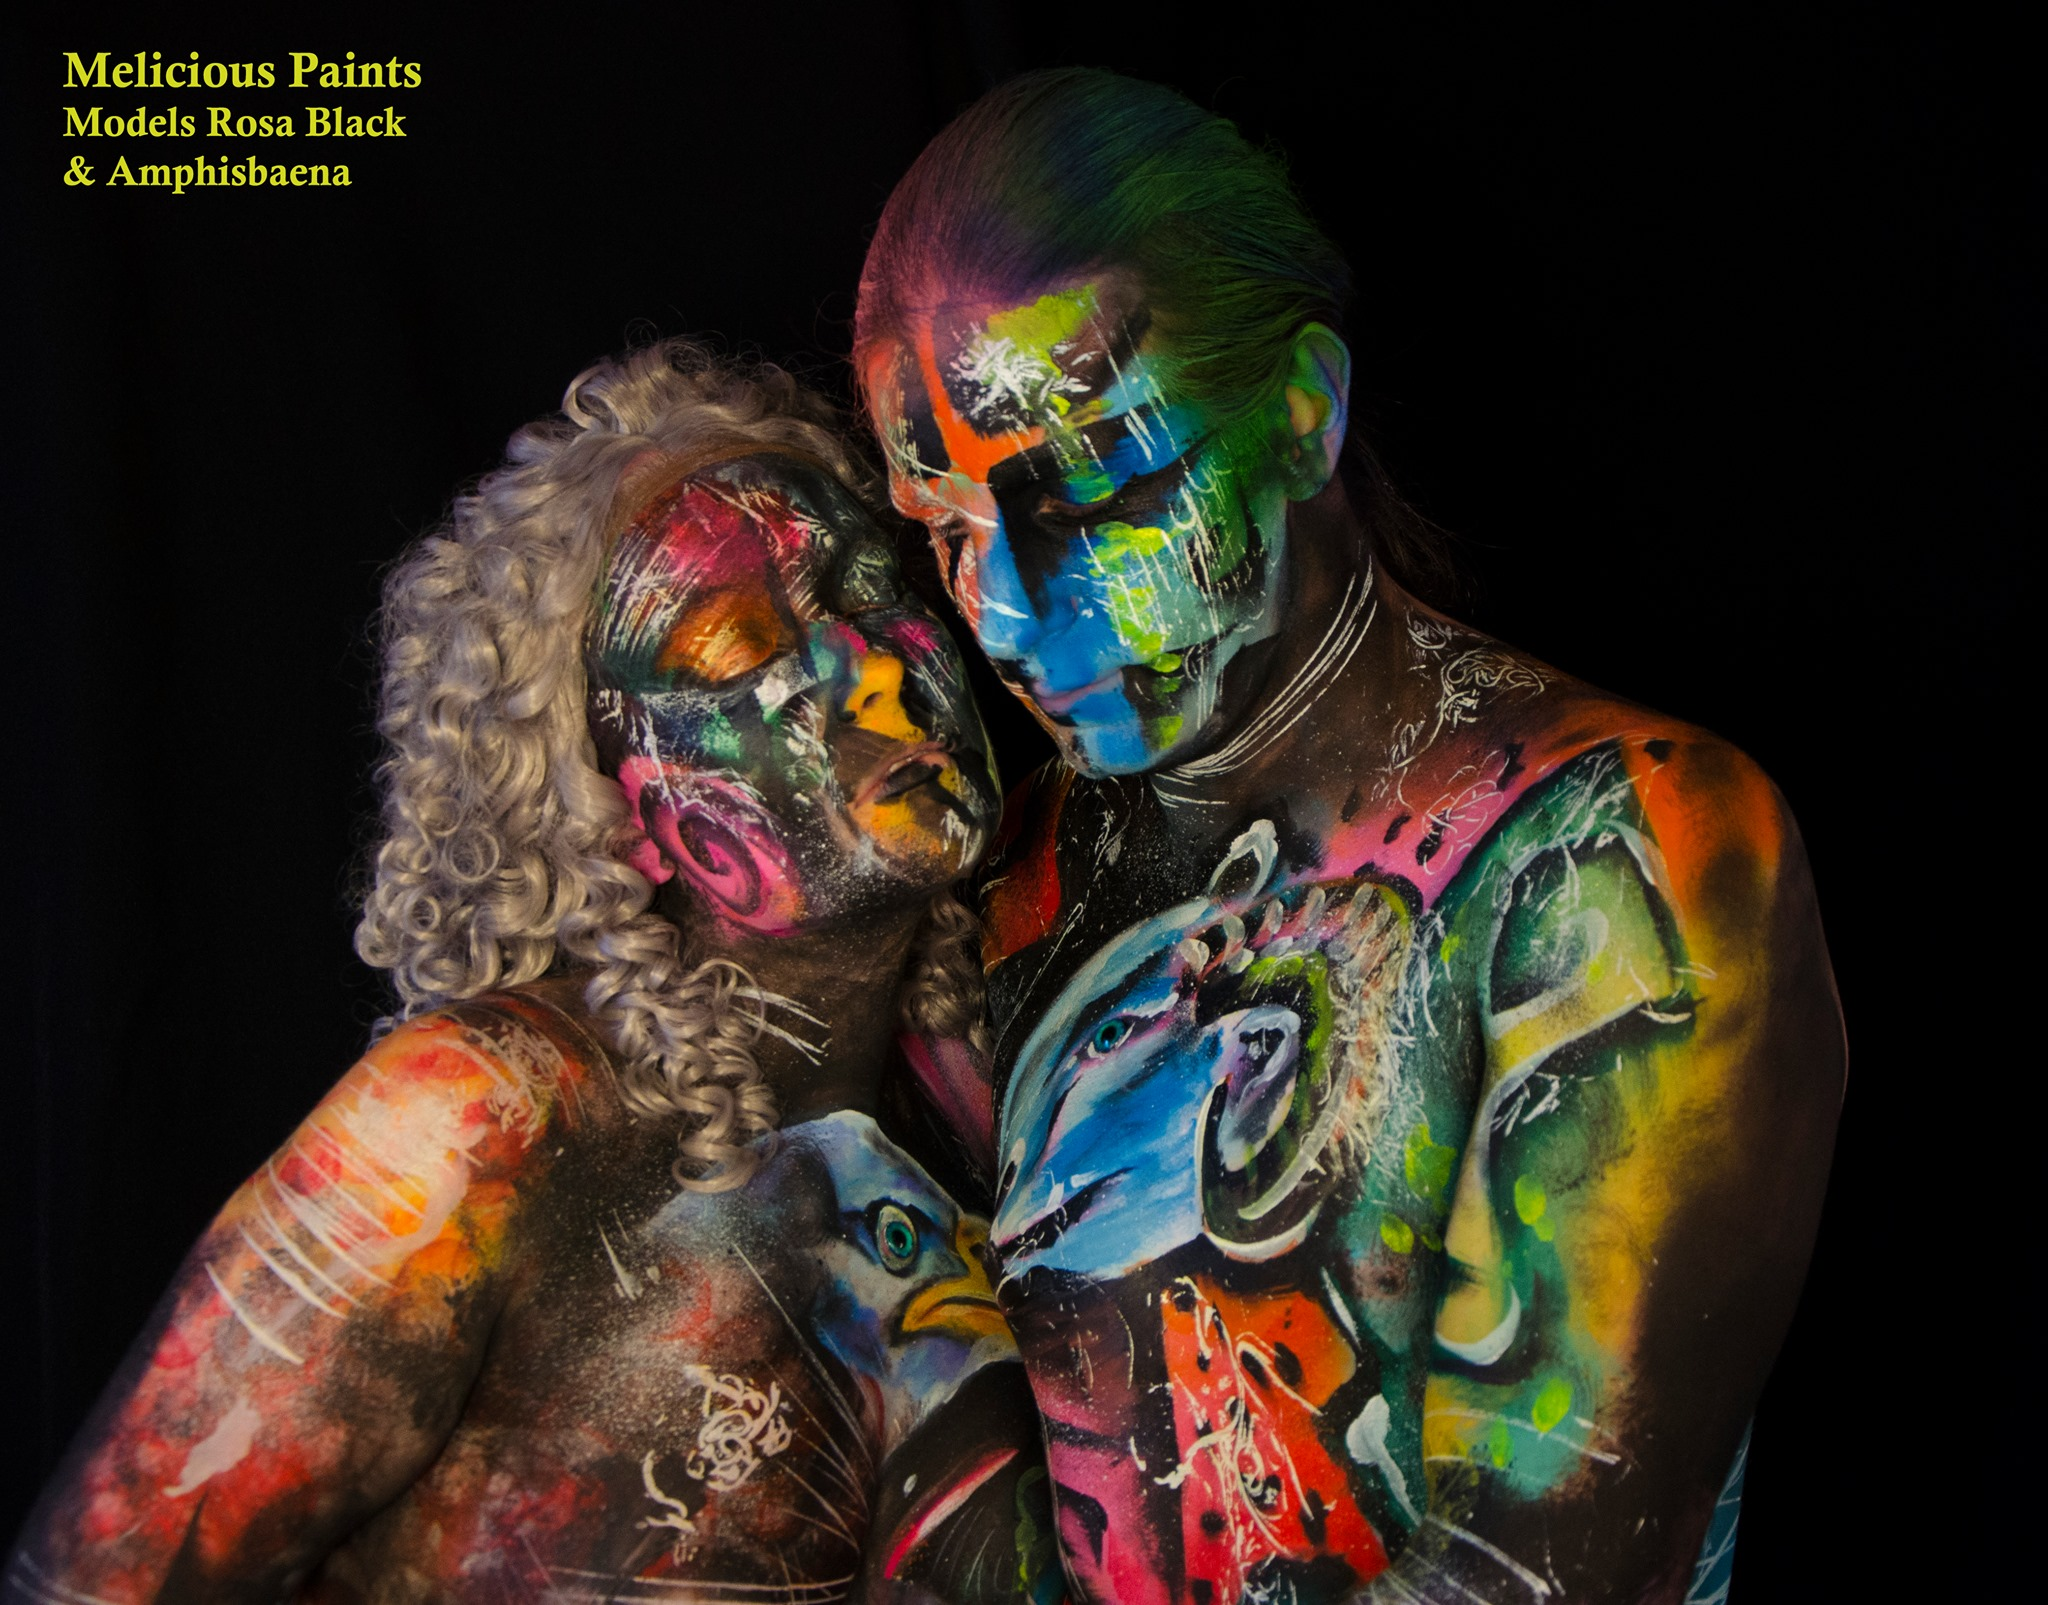 duo bodypaint romantic abstract